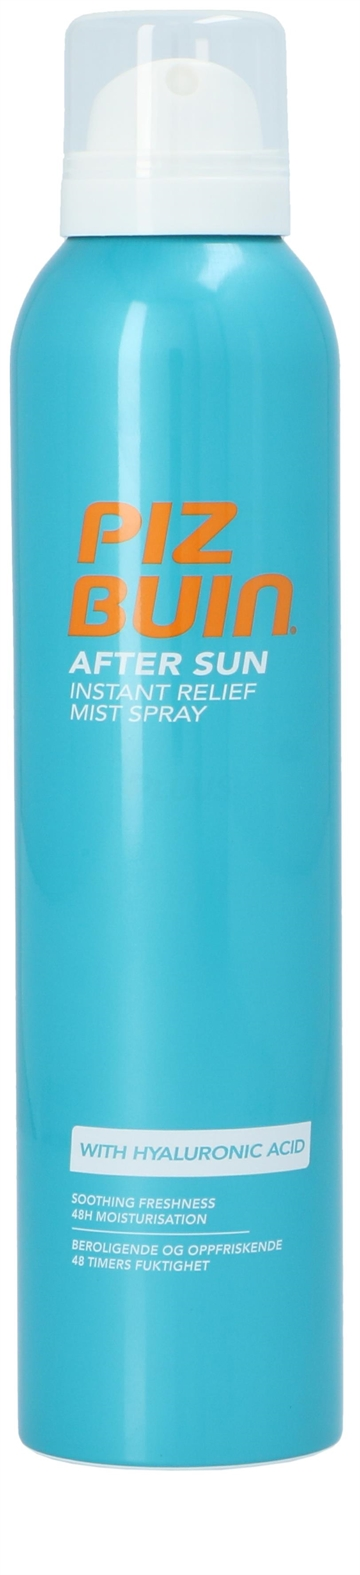 Piz Buin After Sun Instant Relief Mist Spray 200ml